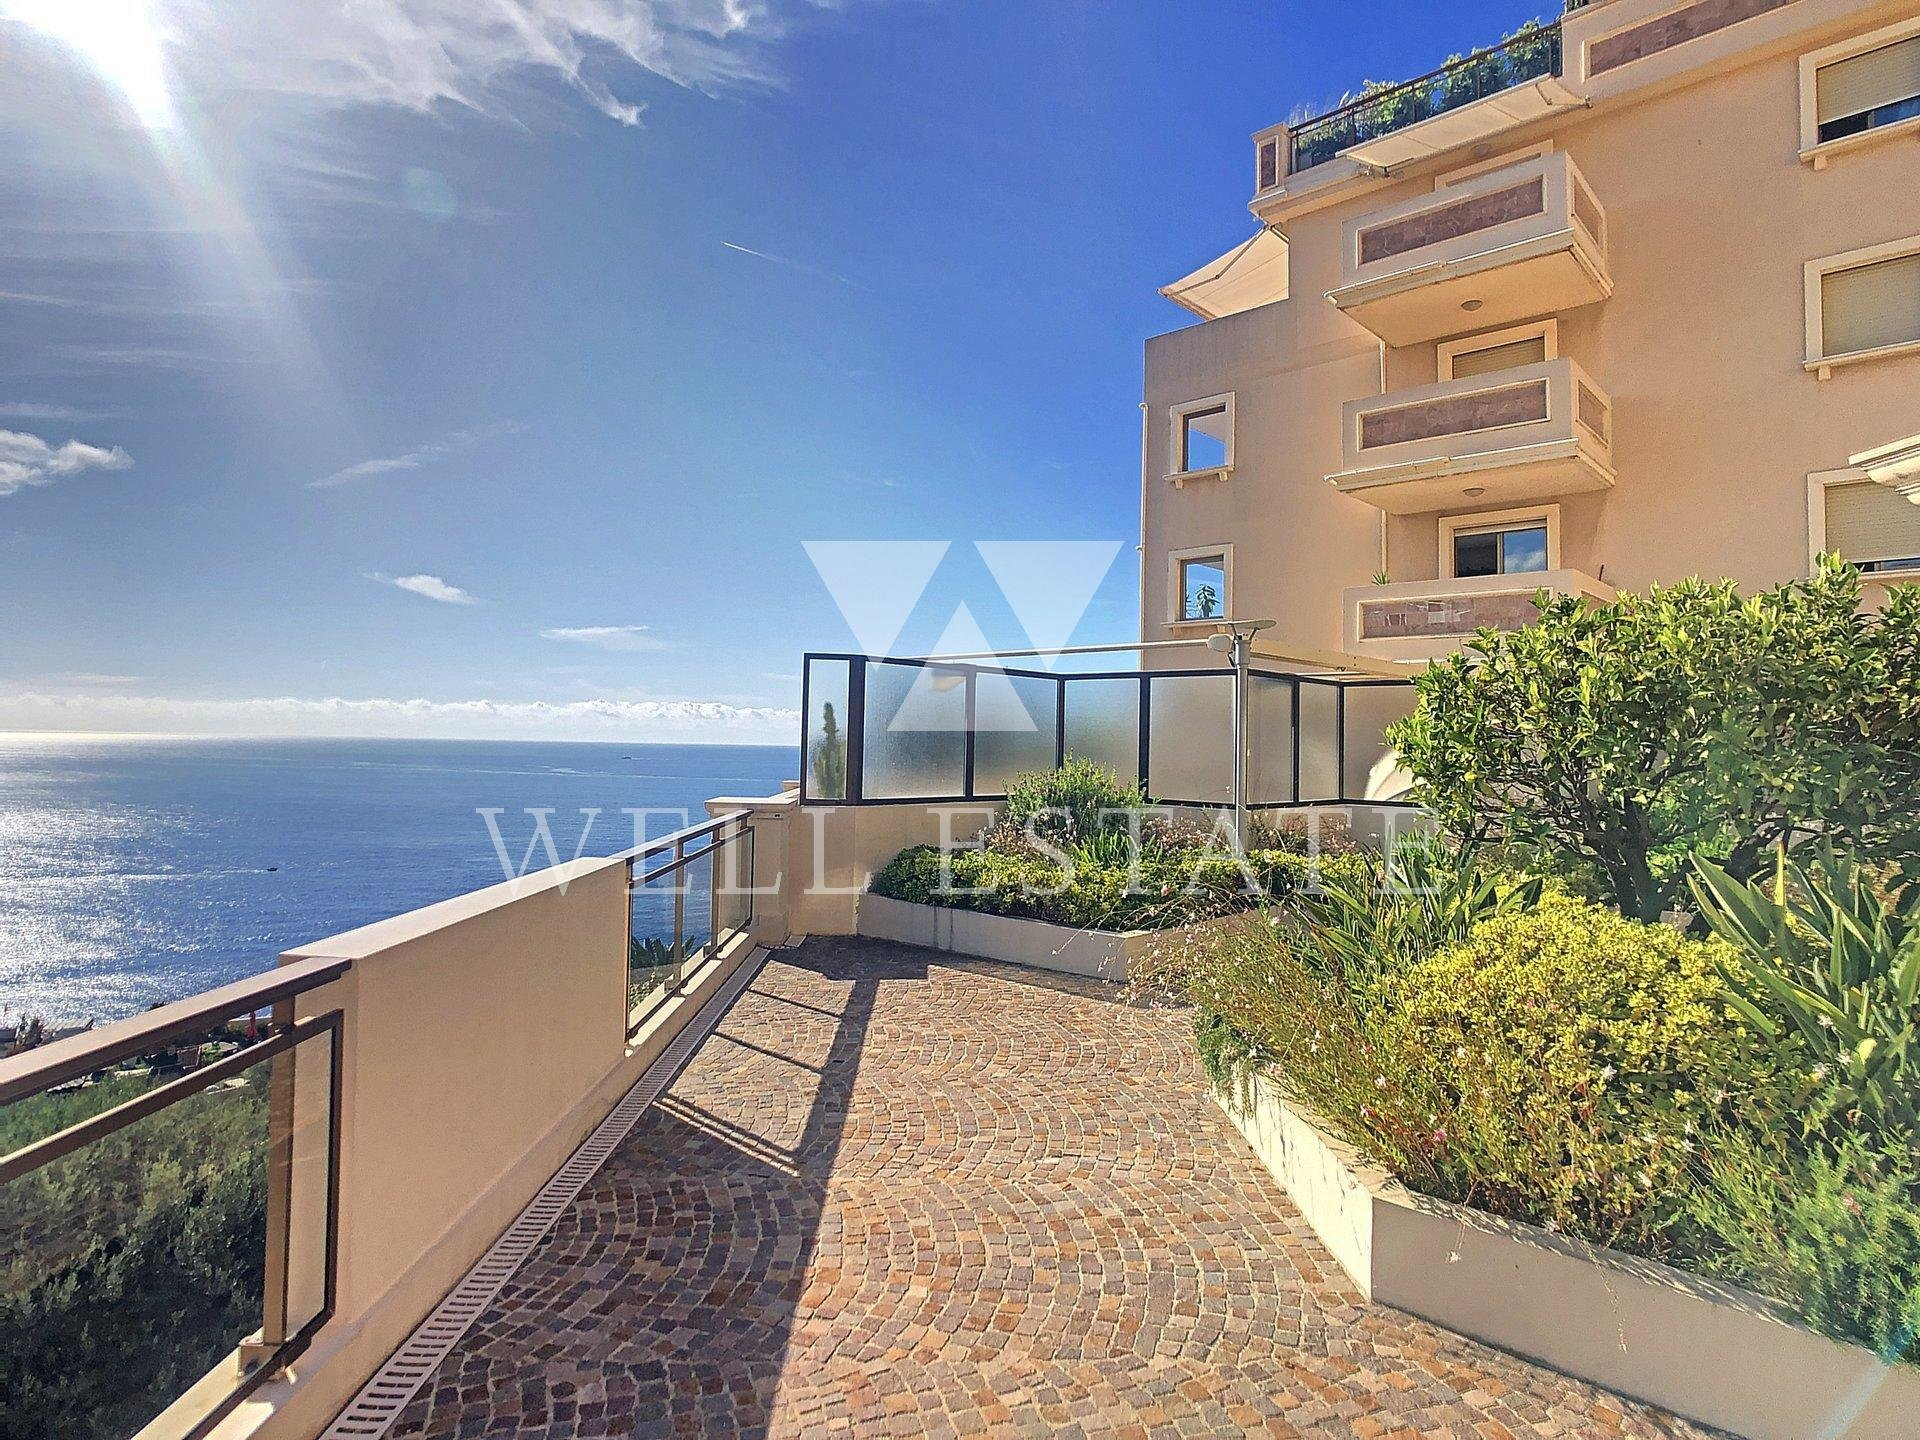 2 BEDROOM APPARTMENT WITH TERRACE AT 900 METERS FROM MONACO